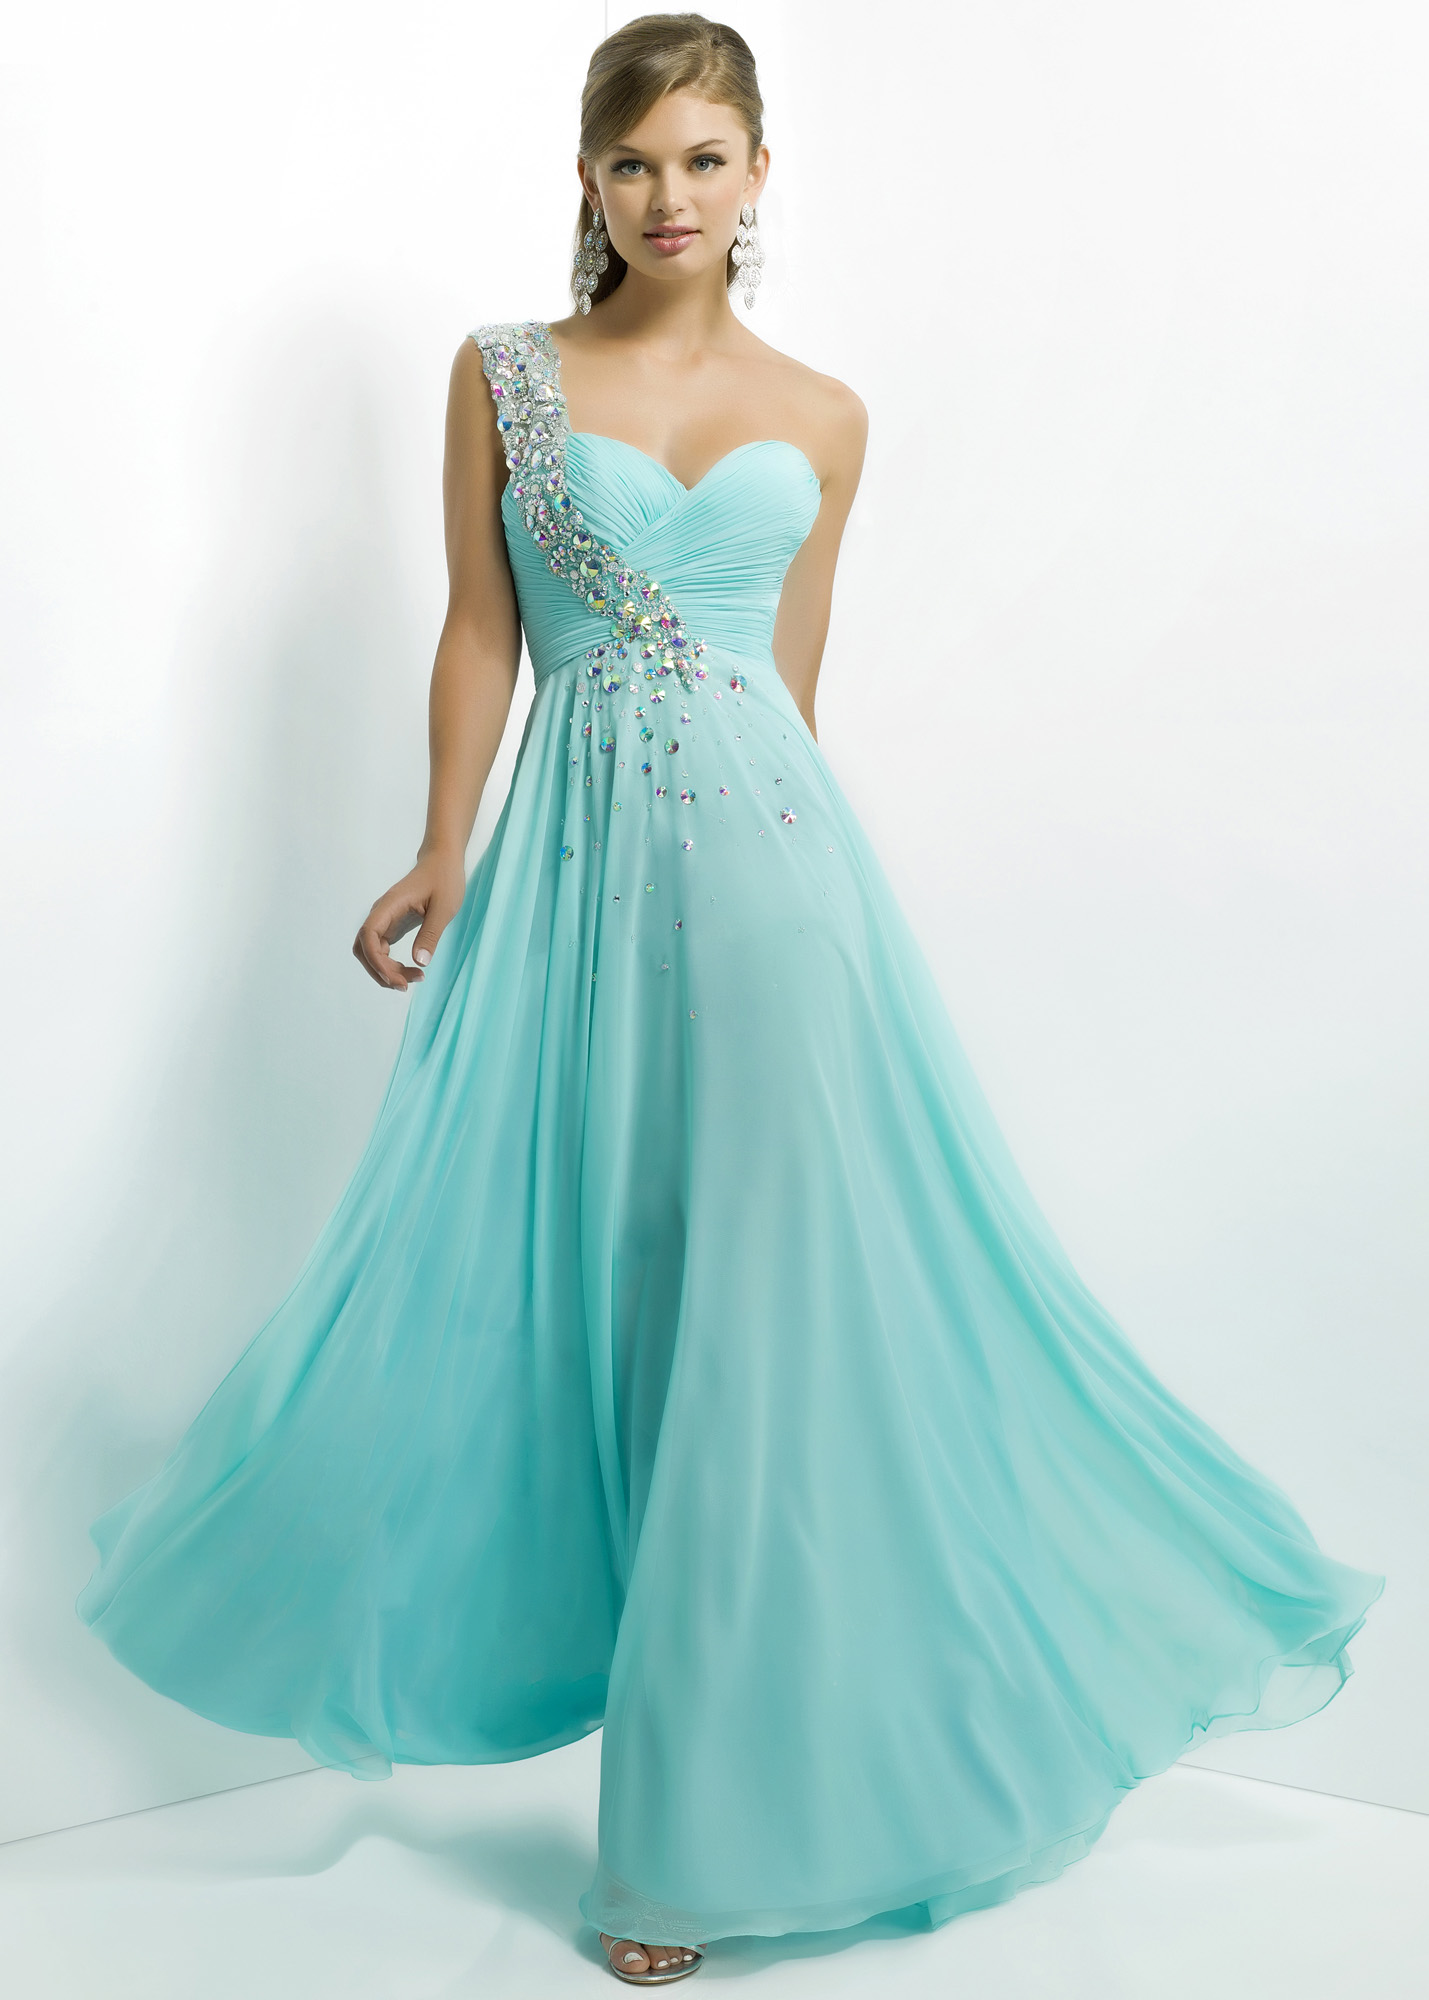 One Shoulder Prom Dresses - Dressed Up Girl